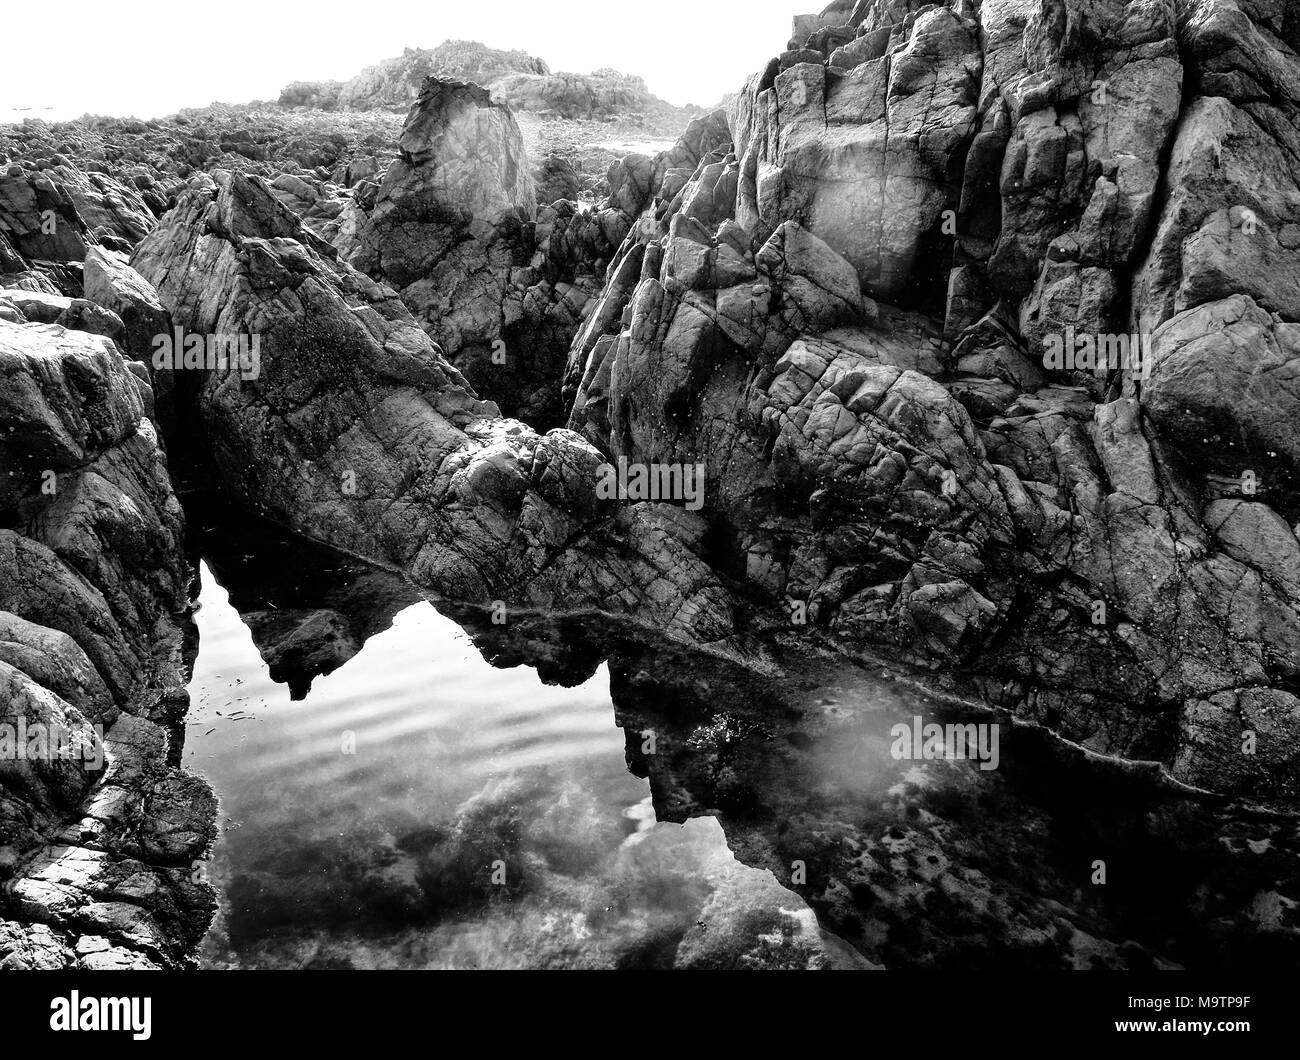 Channel Islands - Stock Image